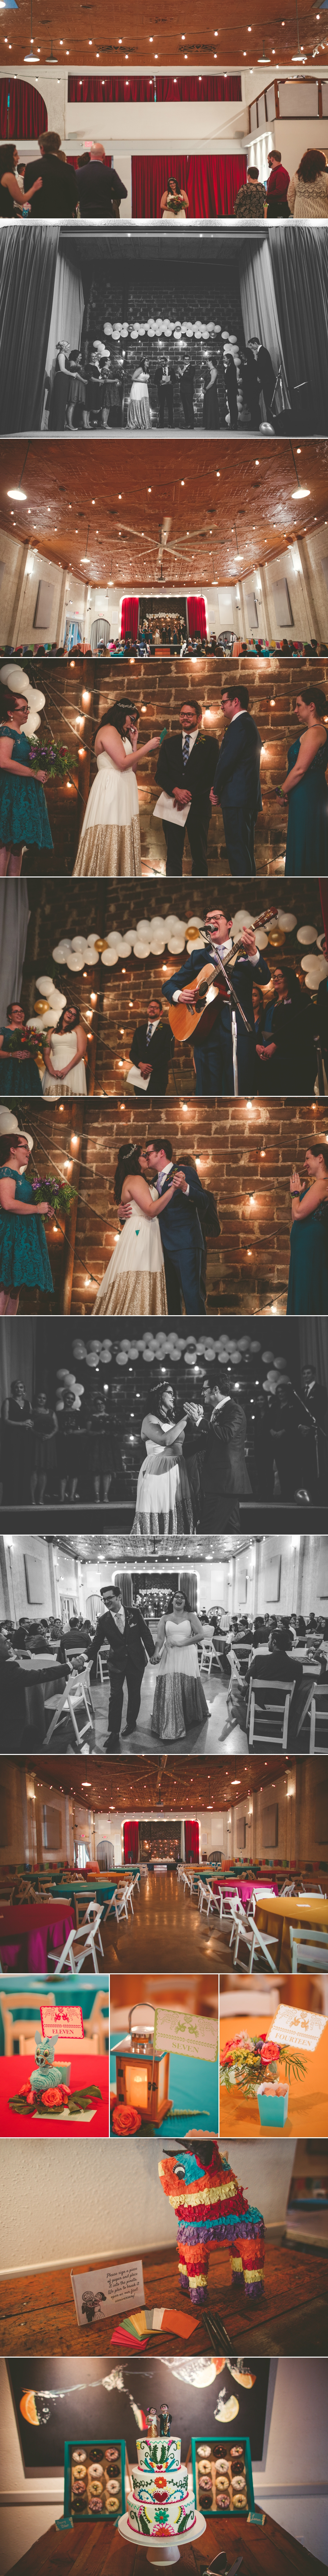 jason_domingues_photography_best_kansas_city_wedding_photographer_kc_weddings_vox_0003.JPG